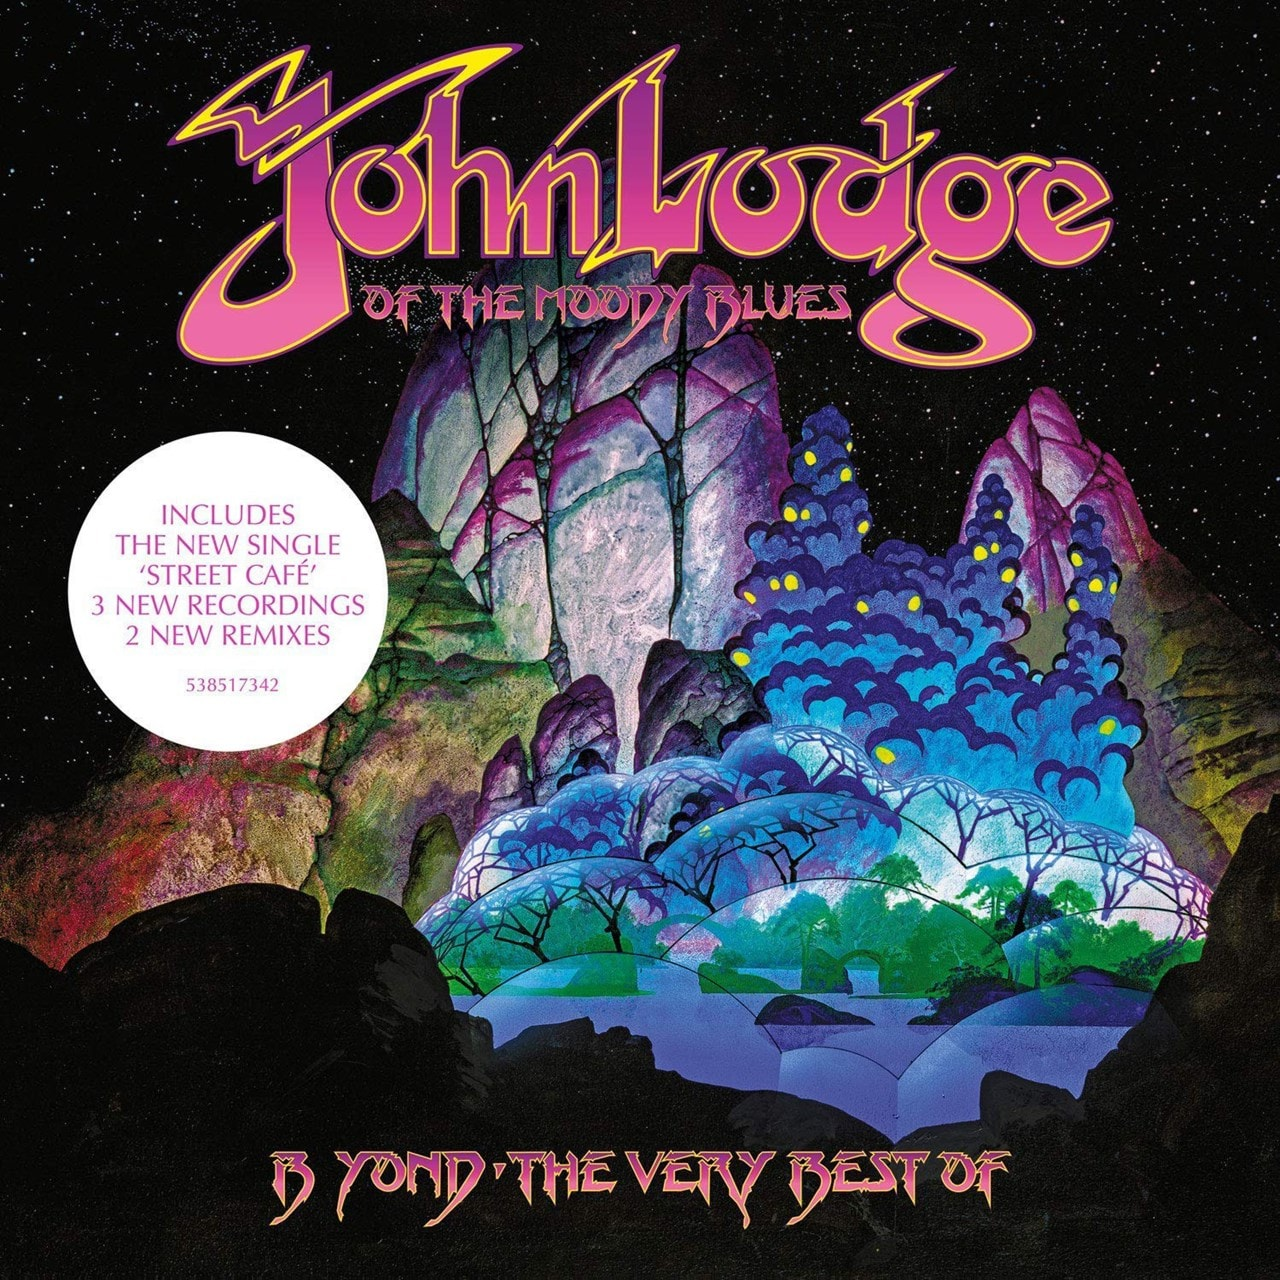 Byond: The Very Best of John Lodge - 1